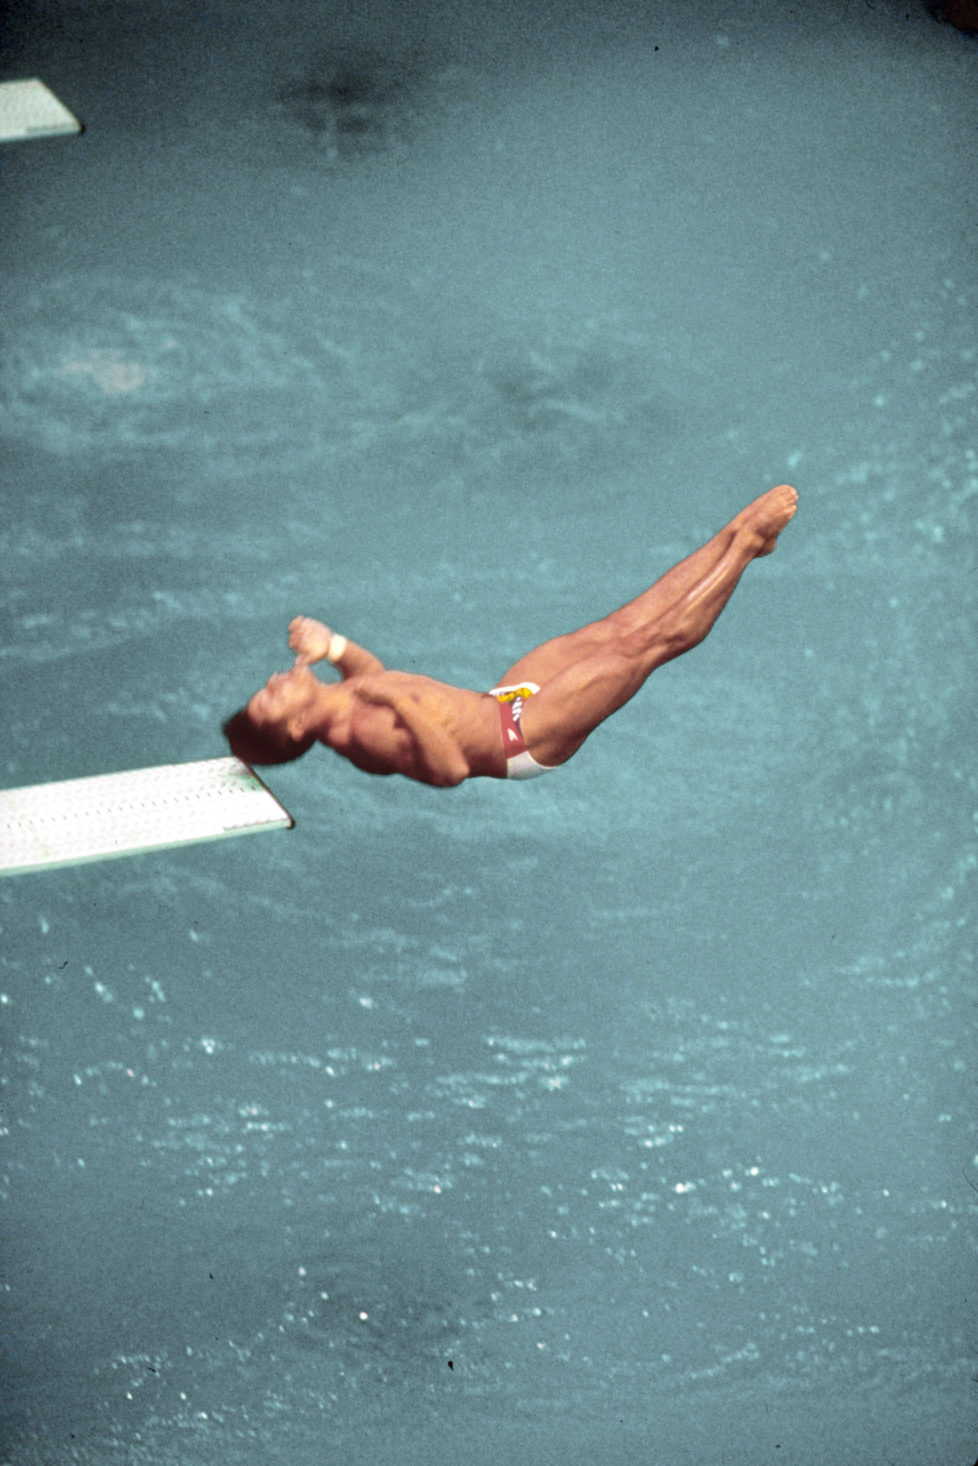 US diver Greg Louganis making dive during which he hit his head on the board while competing in Olympics. (Photo by Rich Clarkson/The LIFE Images Collection/Getty Images)